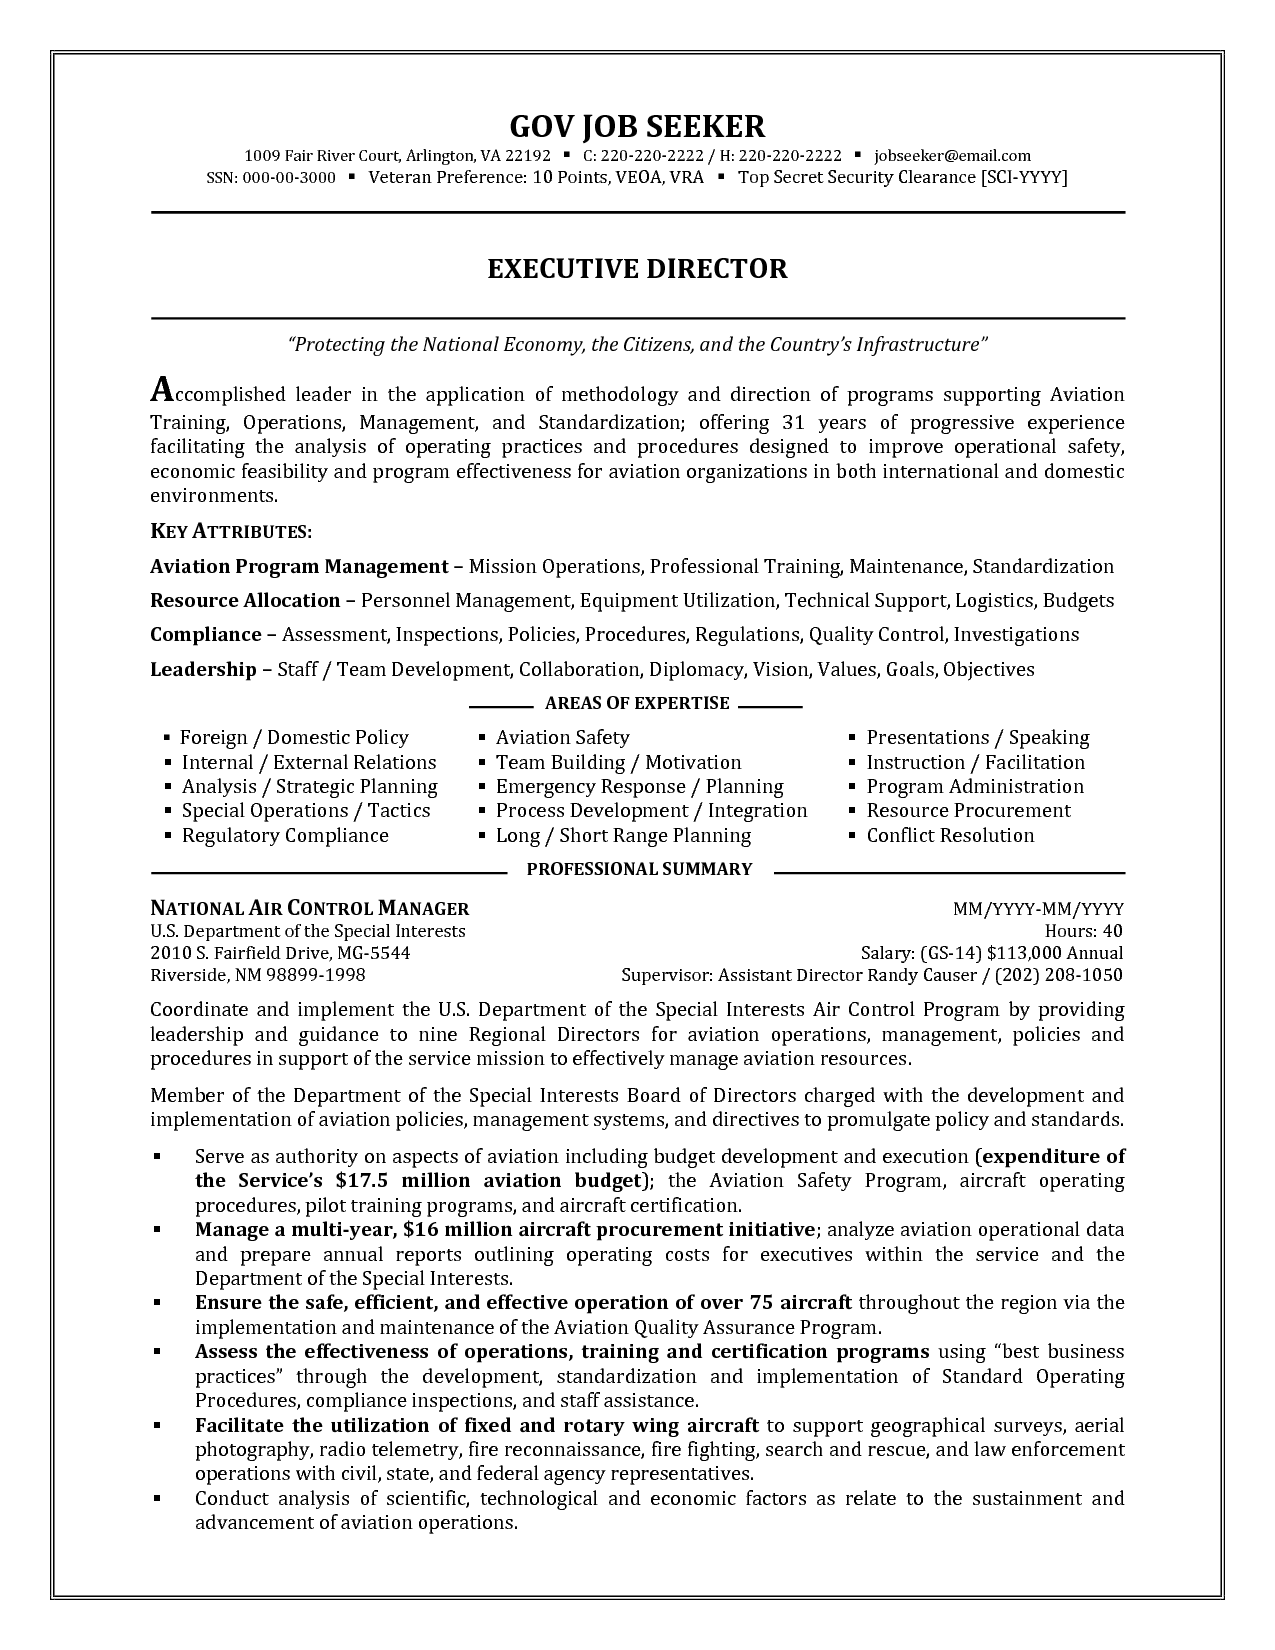 Film Production Assistant Resume Template   Http://www.resumecareer.info/  Production Worker Resume